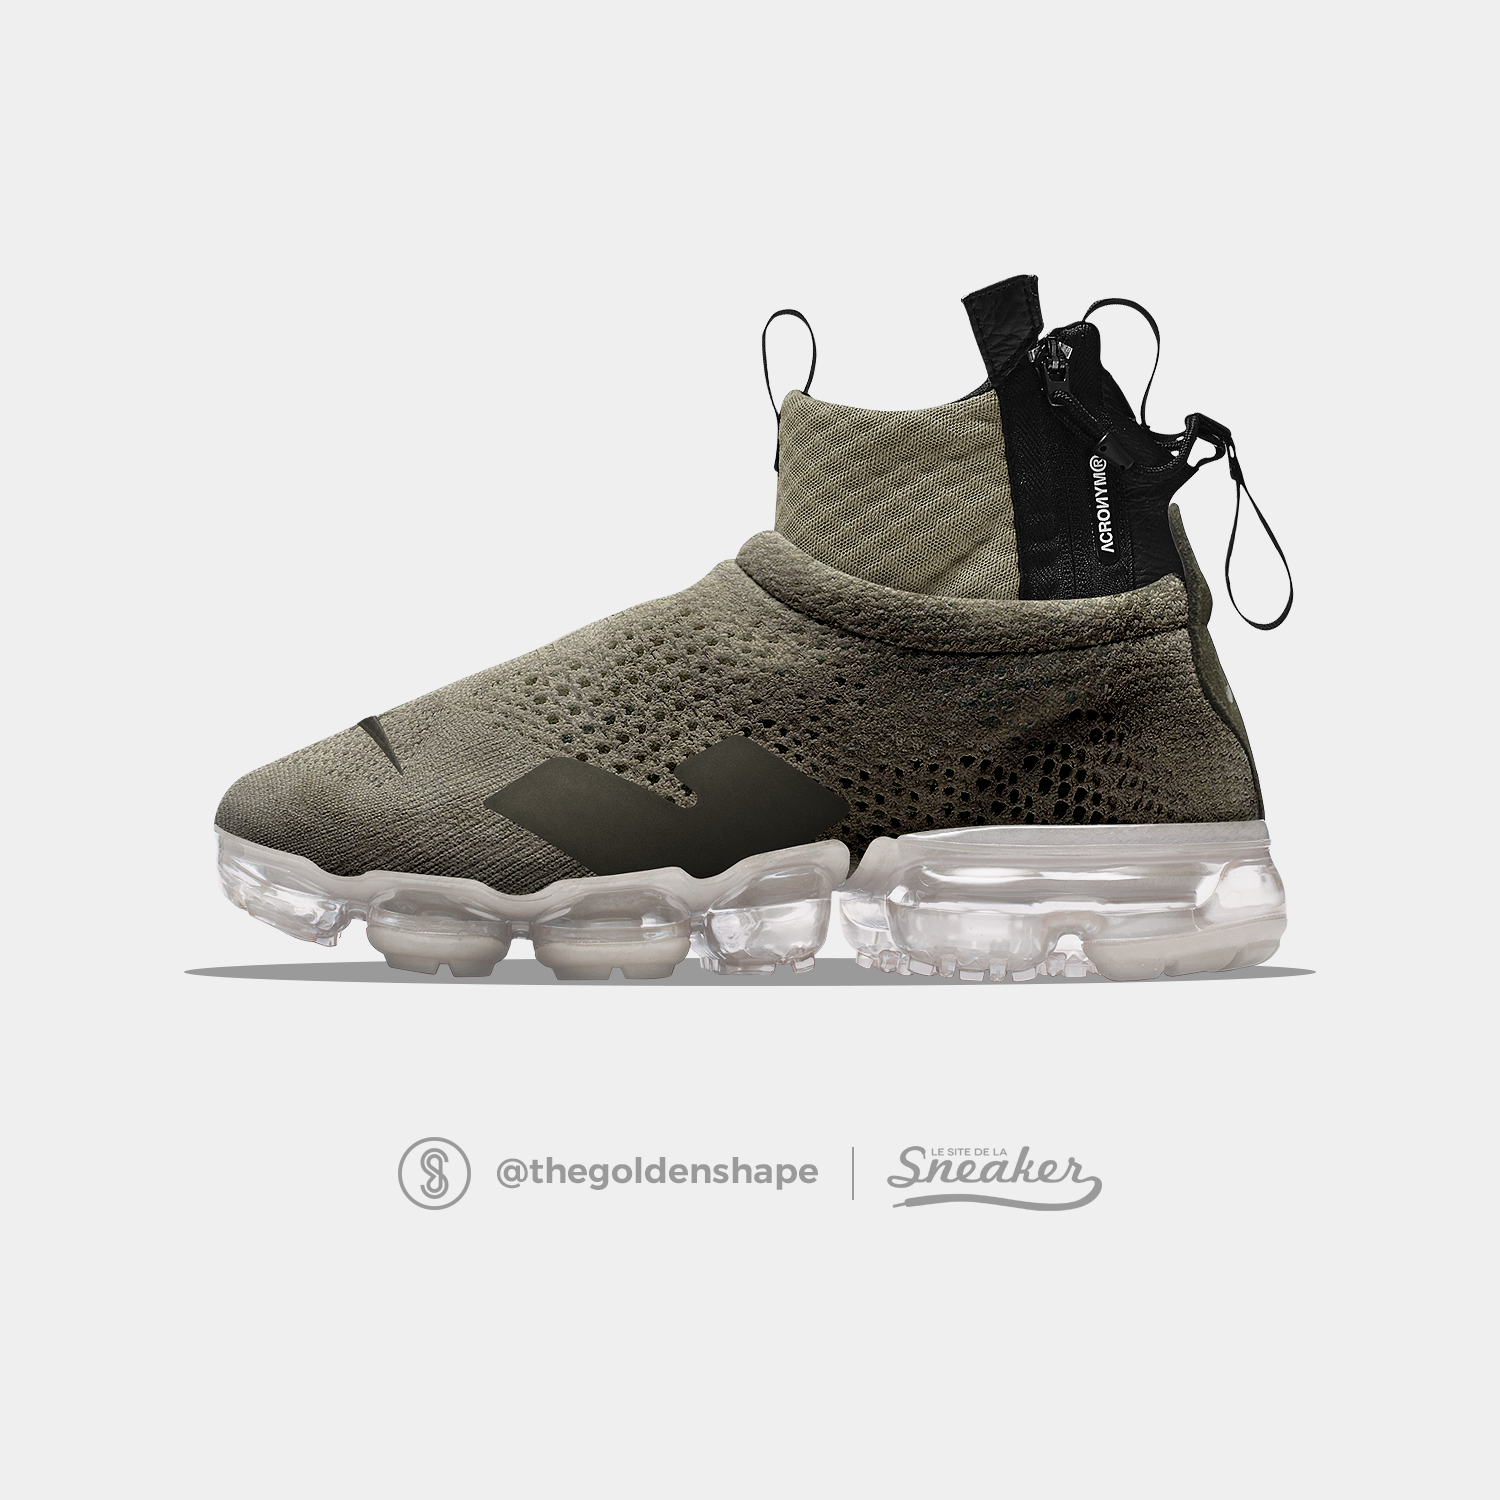 ab80ad82a5 Acronym x Nike Air VaporMax Flyknit Moc Pack | Shoes | Sneakers ...